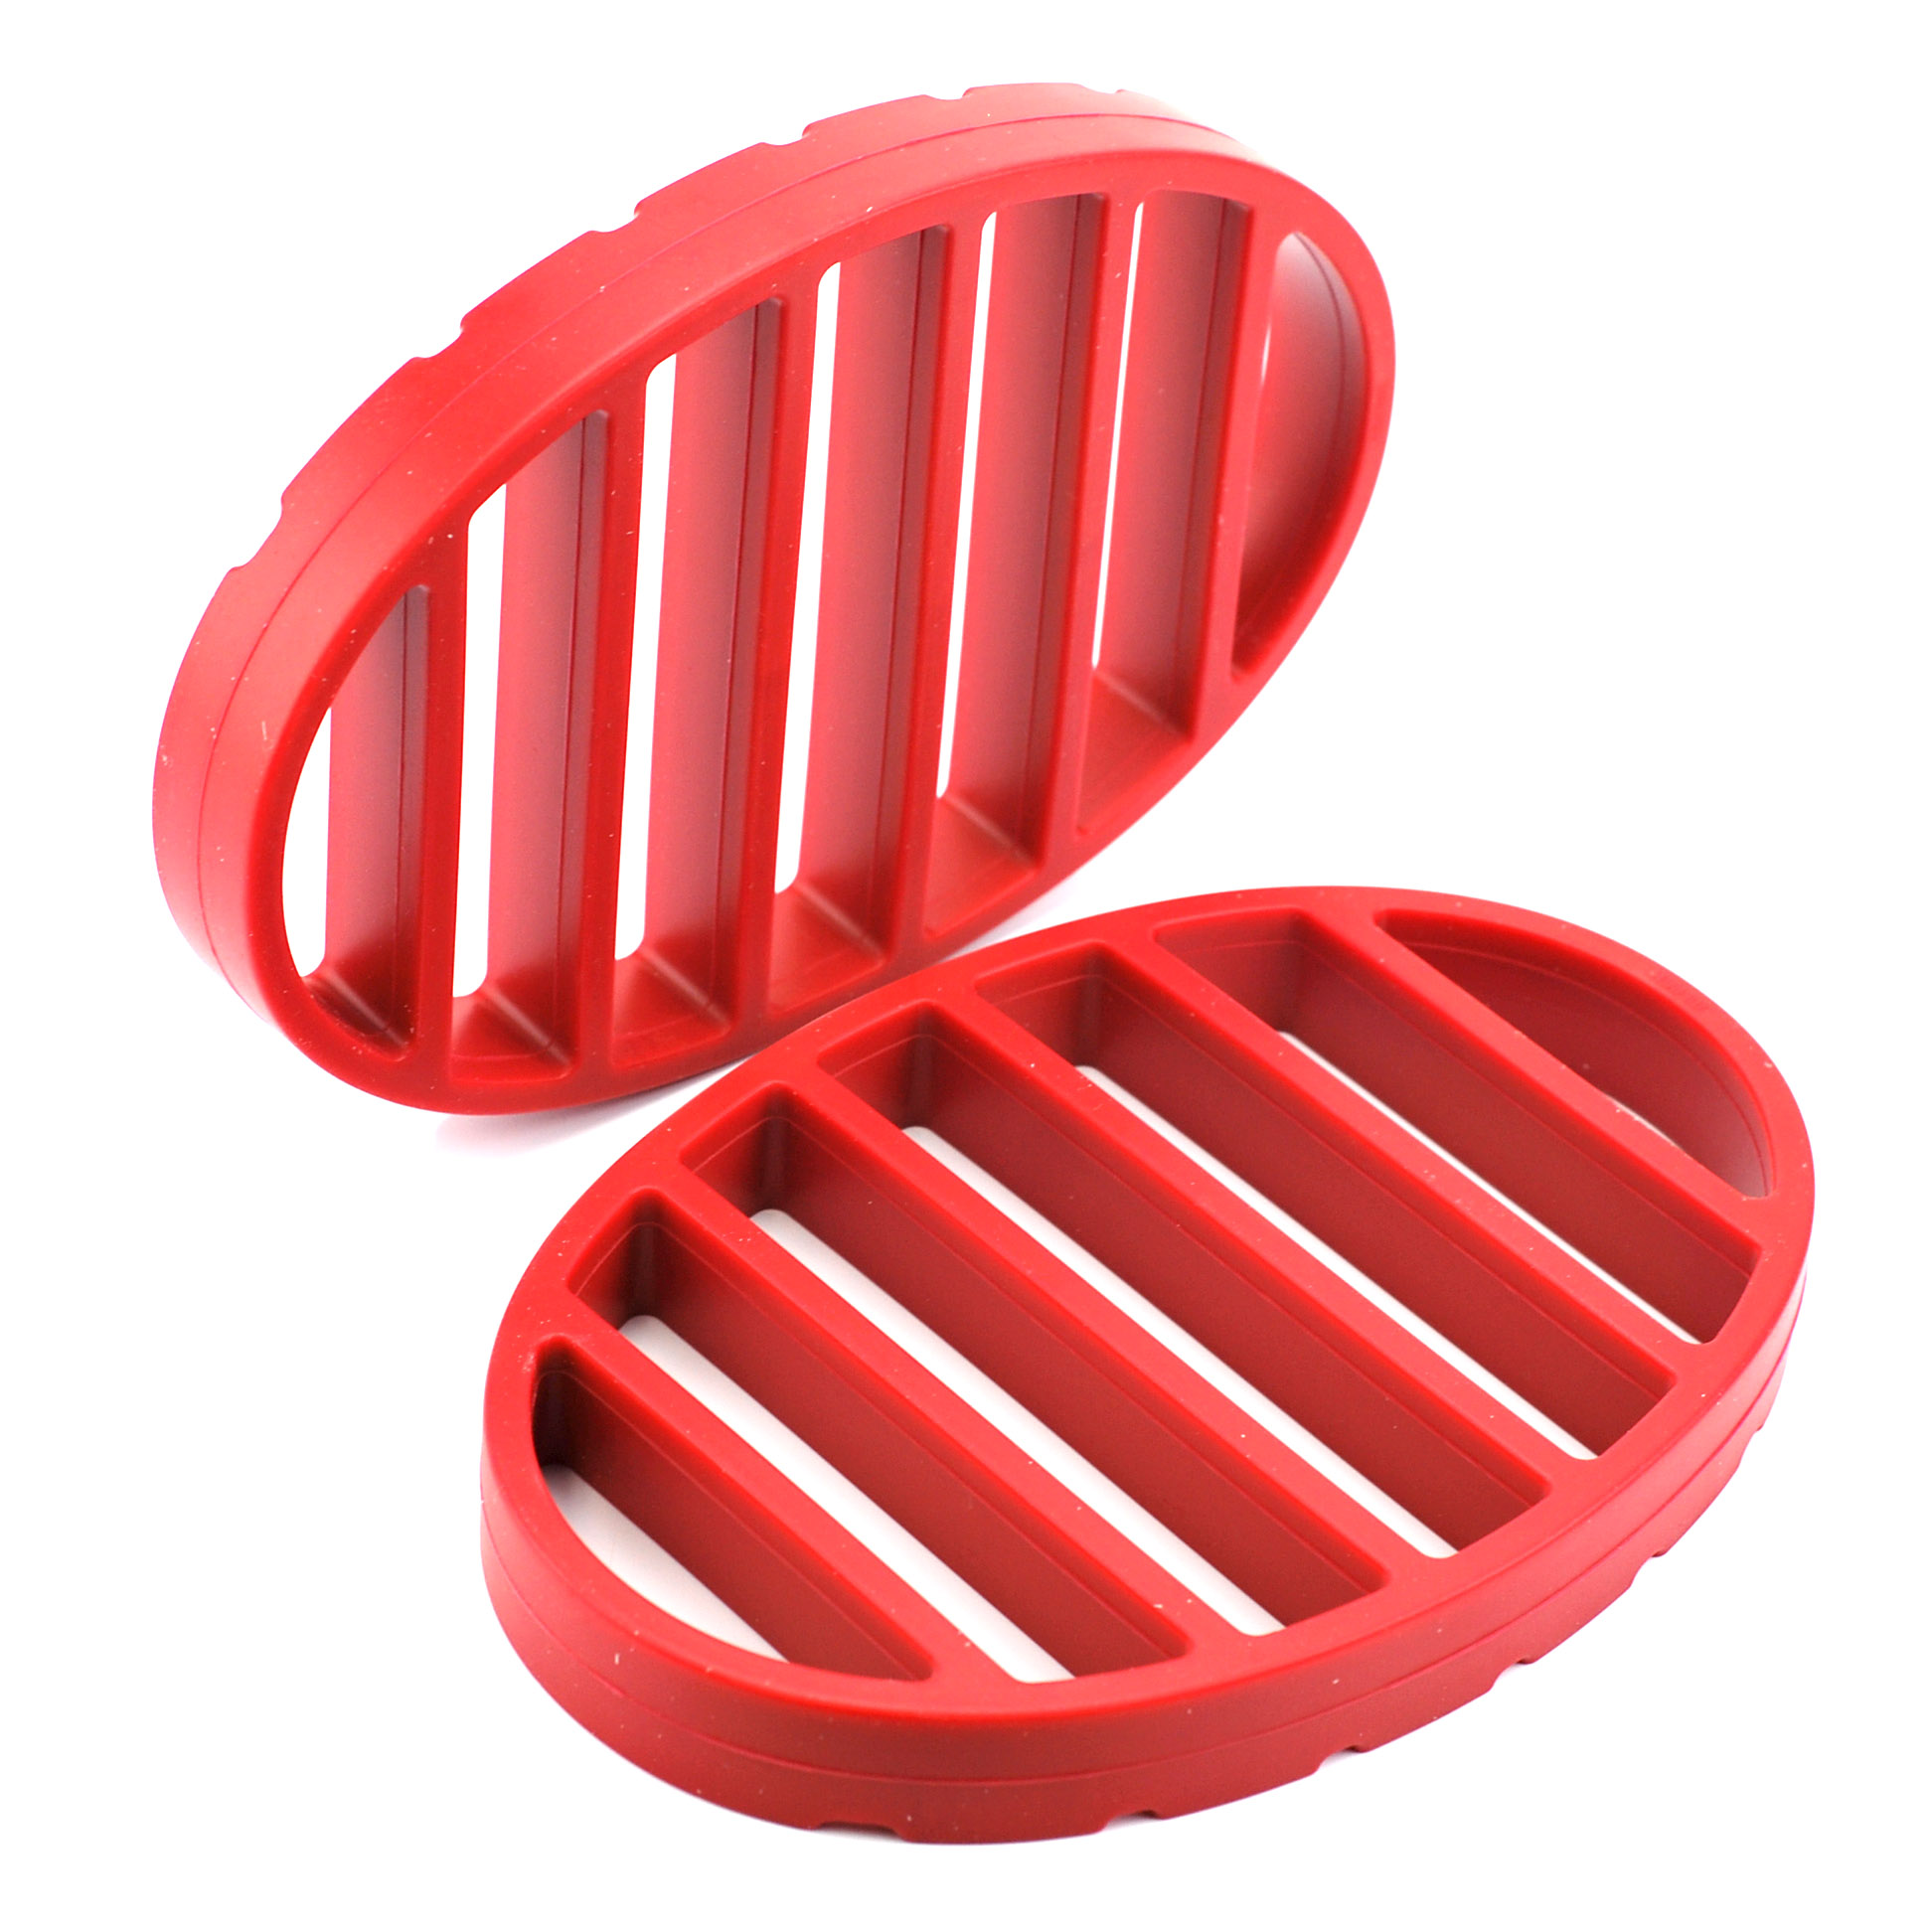 Flat Roasting Rack, Nonstick Turkey Roasting Pans With Rack Red (pack Of 2) by Norpro Kitchenware